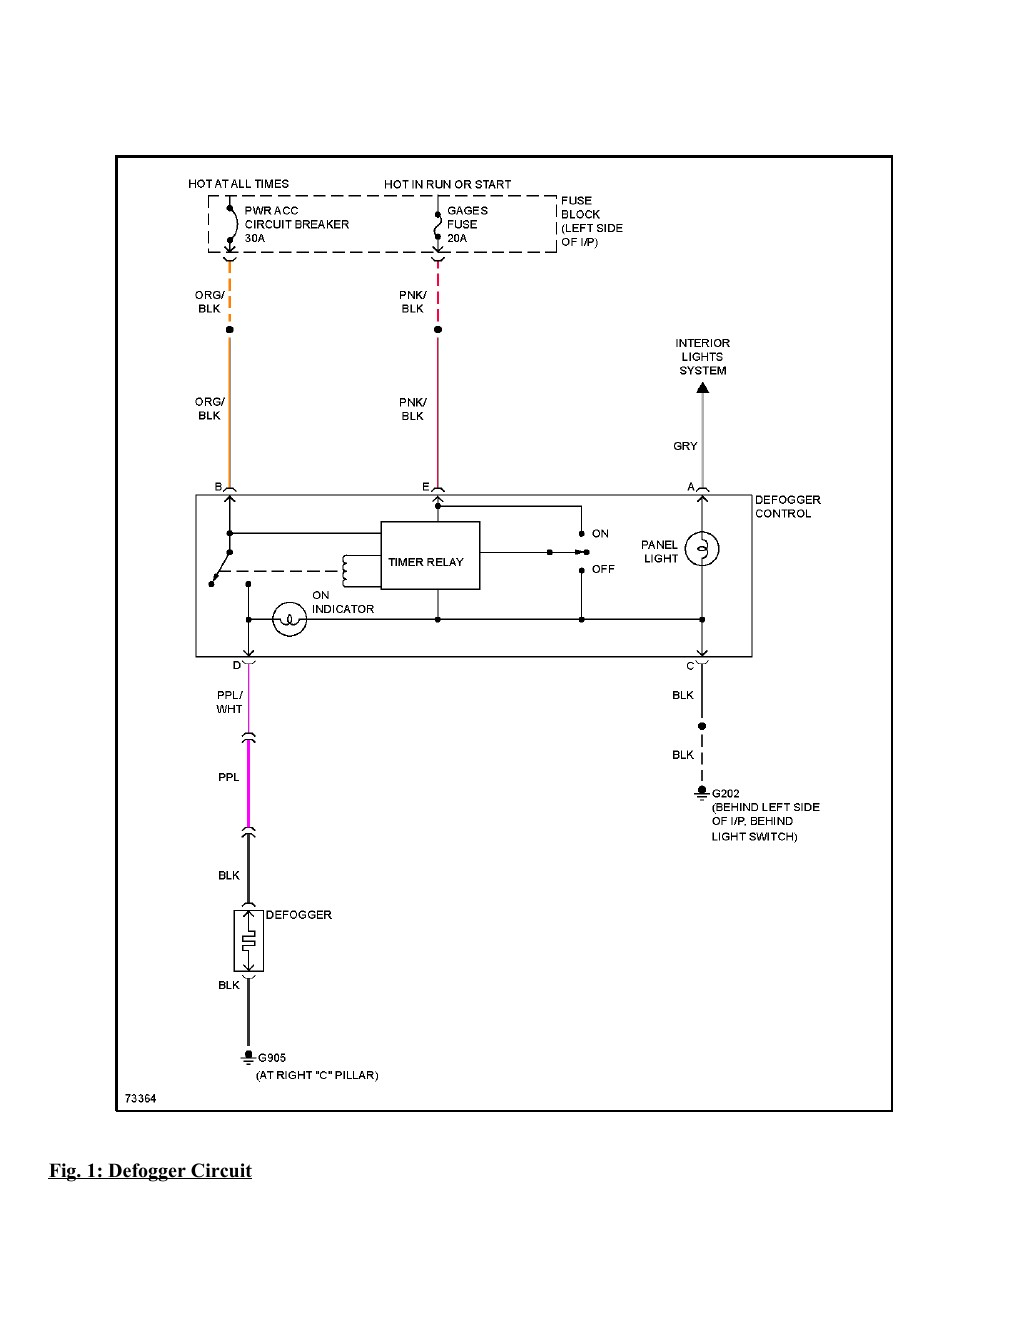 1995 chevrolet monte carlo ss complete wiring diagram part 1999 monte carlo wiring diagram 1999 monte [ 1020 x 1320 Pixel ]